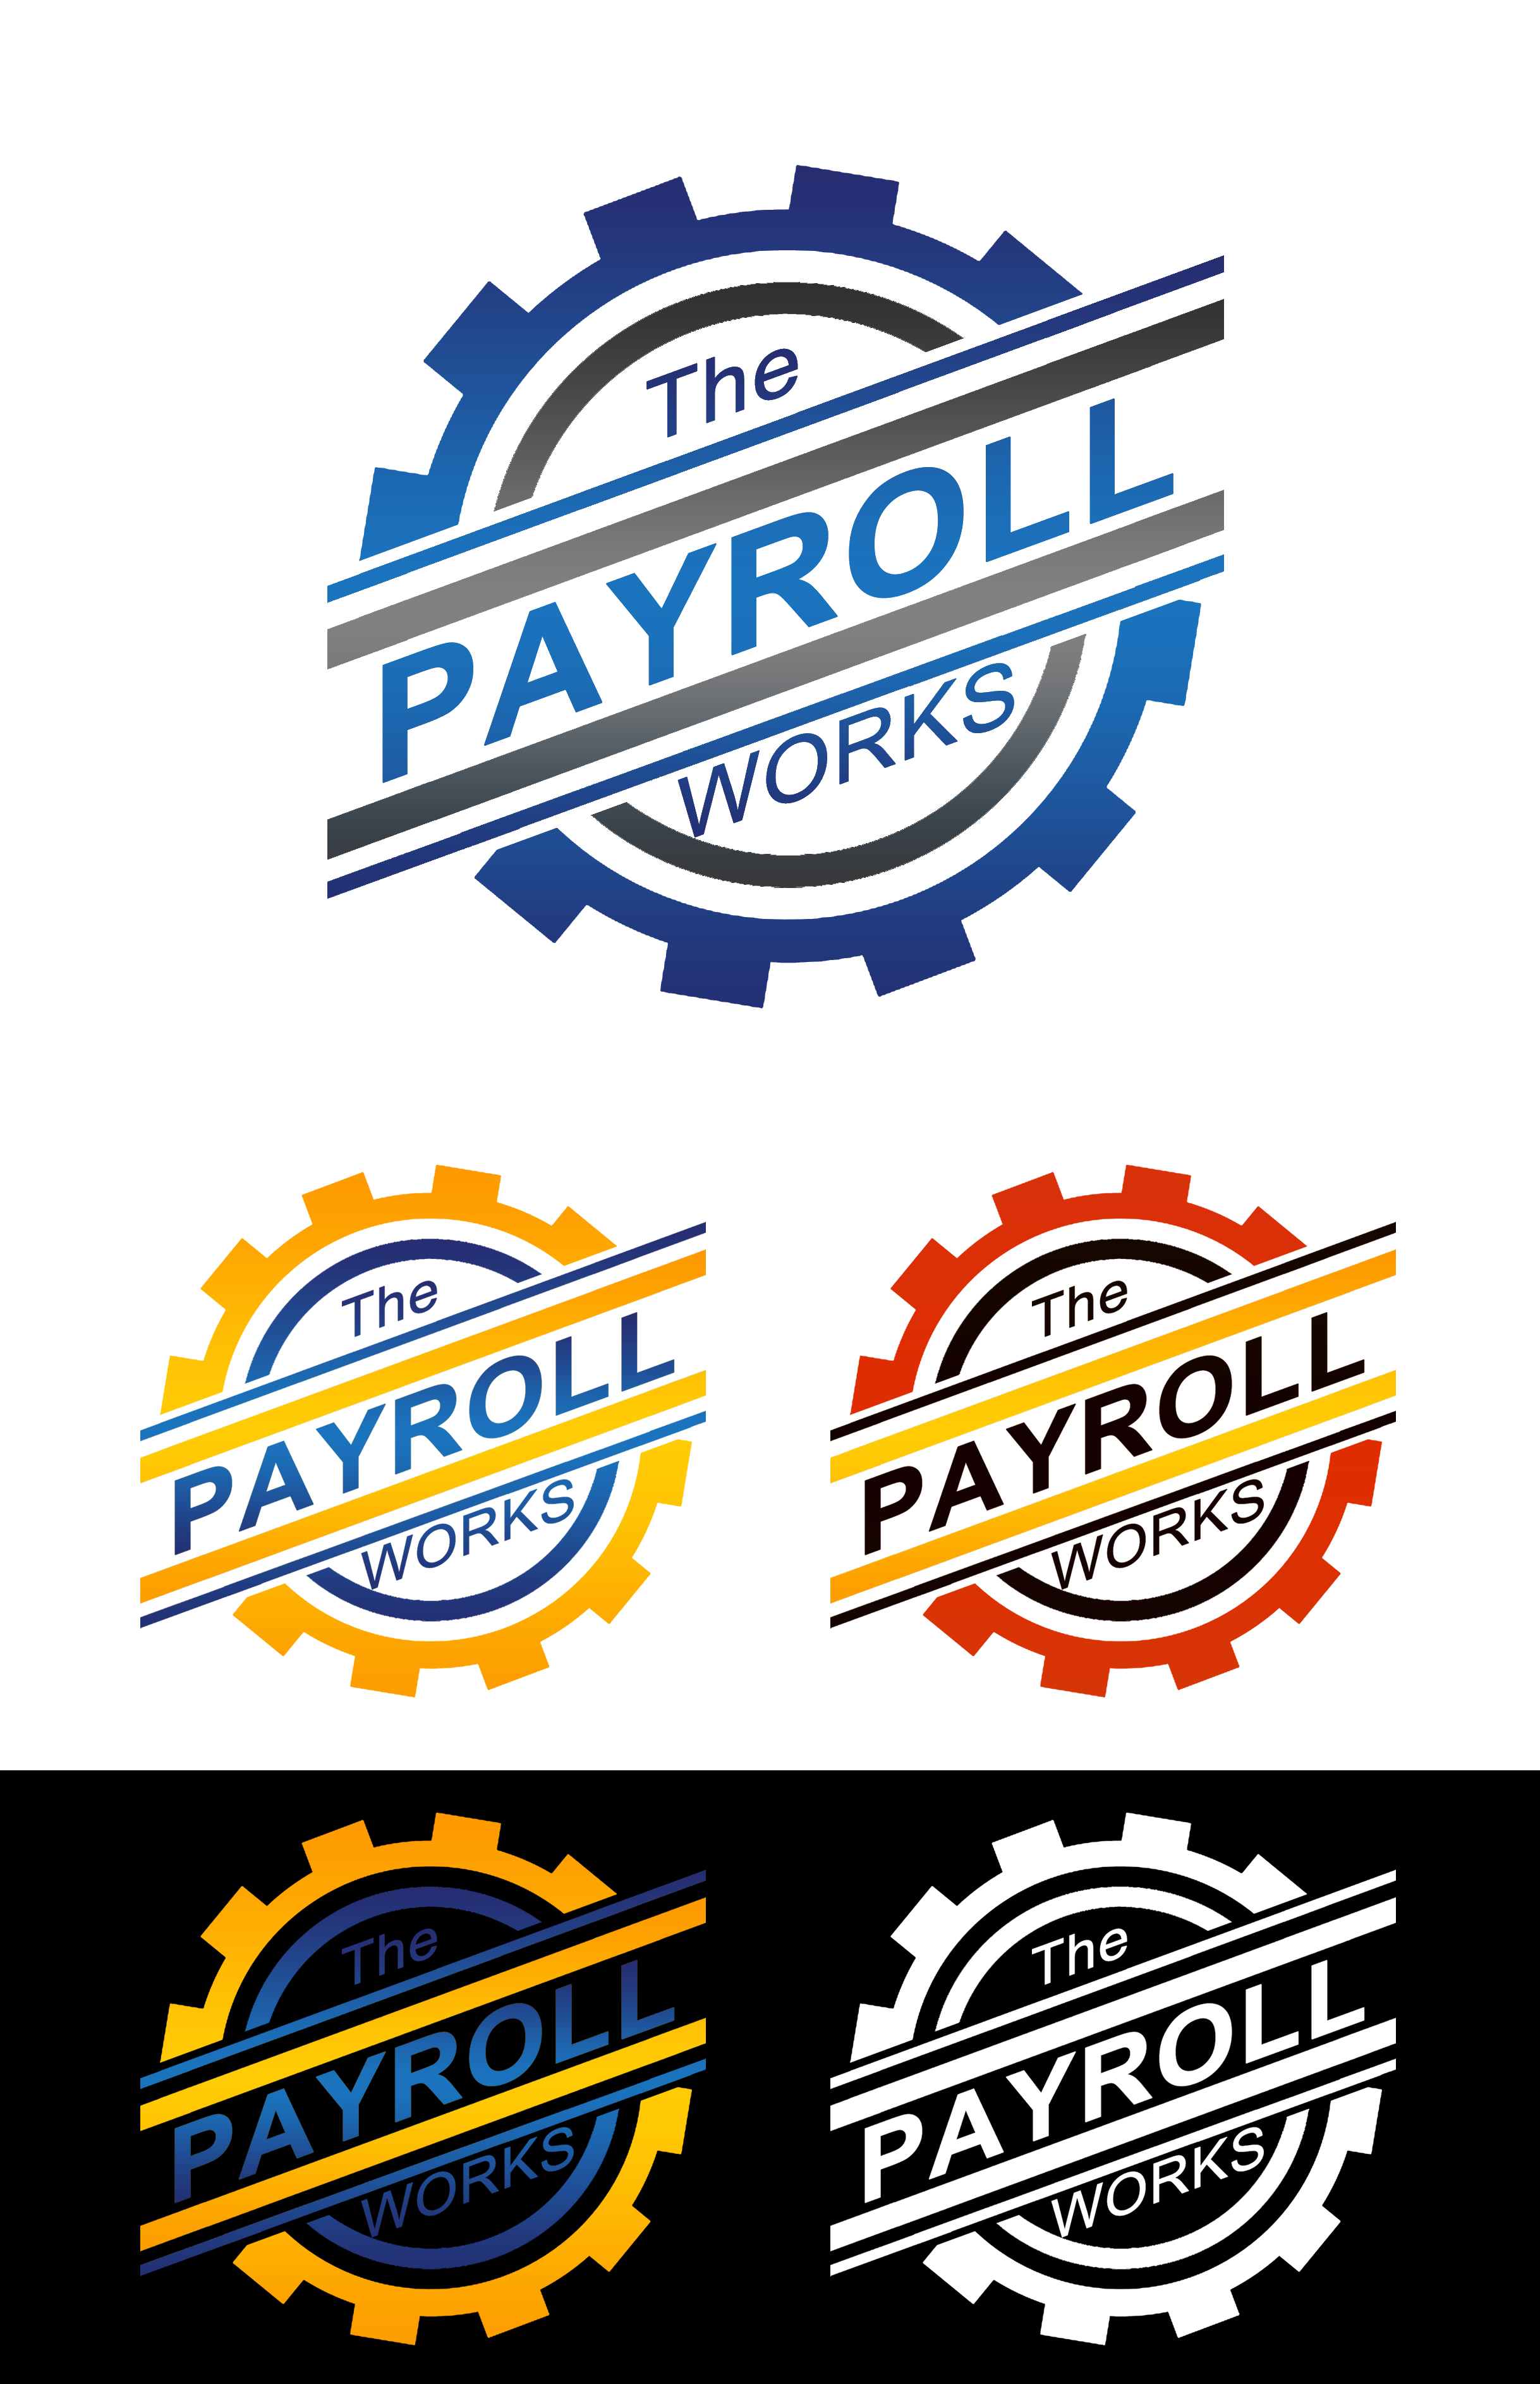 Logo Design by JSDESIGNGROUP - Entry No. 94 in the Logo Design Contest Captivating Logo Design for The Payroll Works.